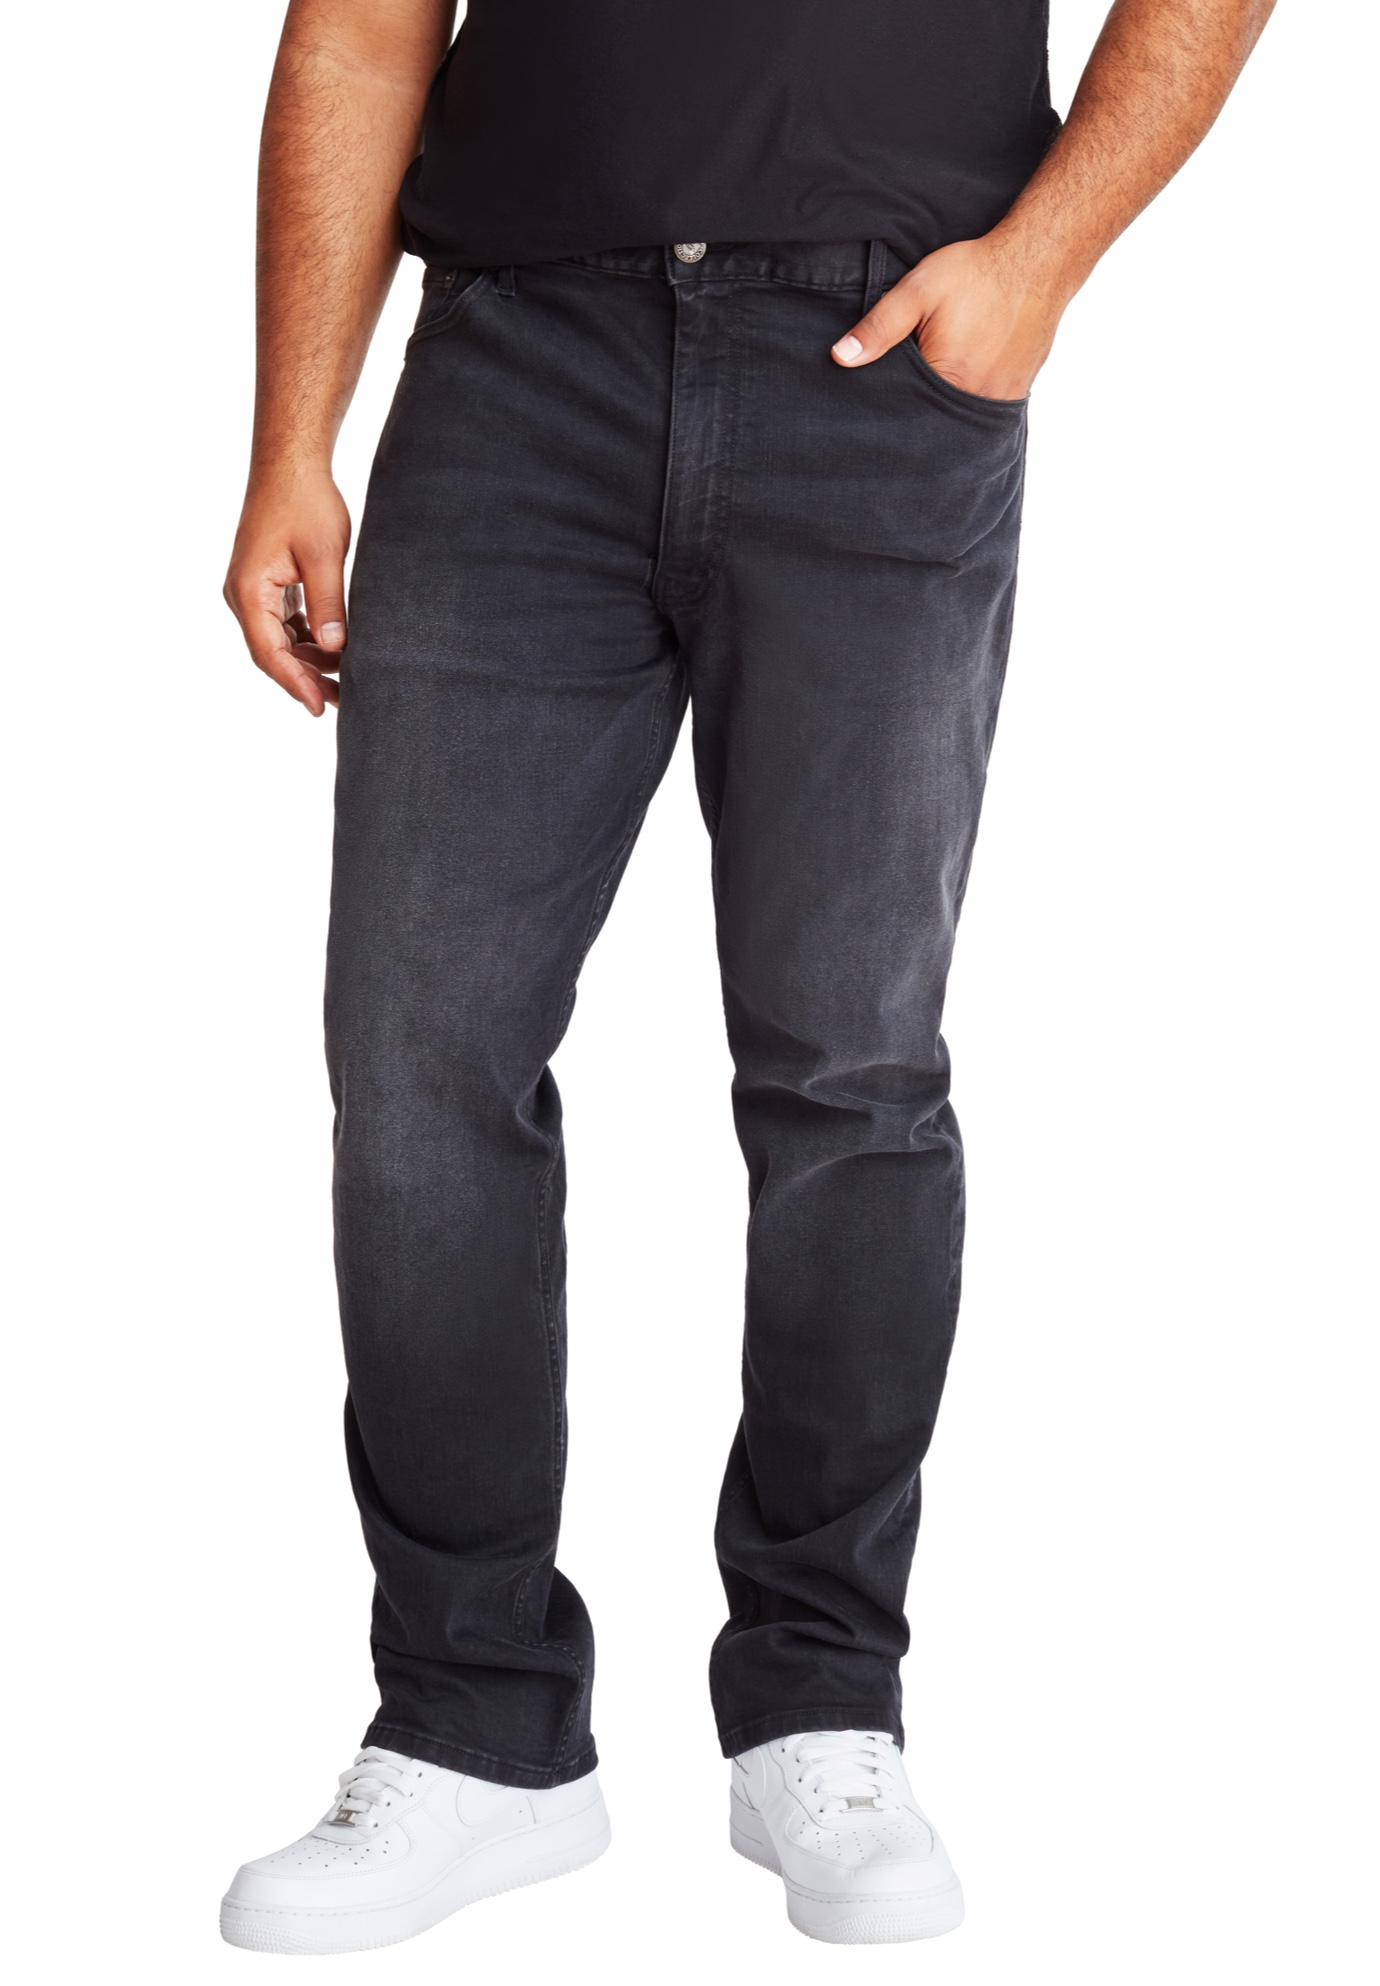 MVP Collections® Black Vintage Wash Straight Leg Jeans,